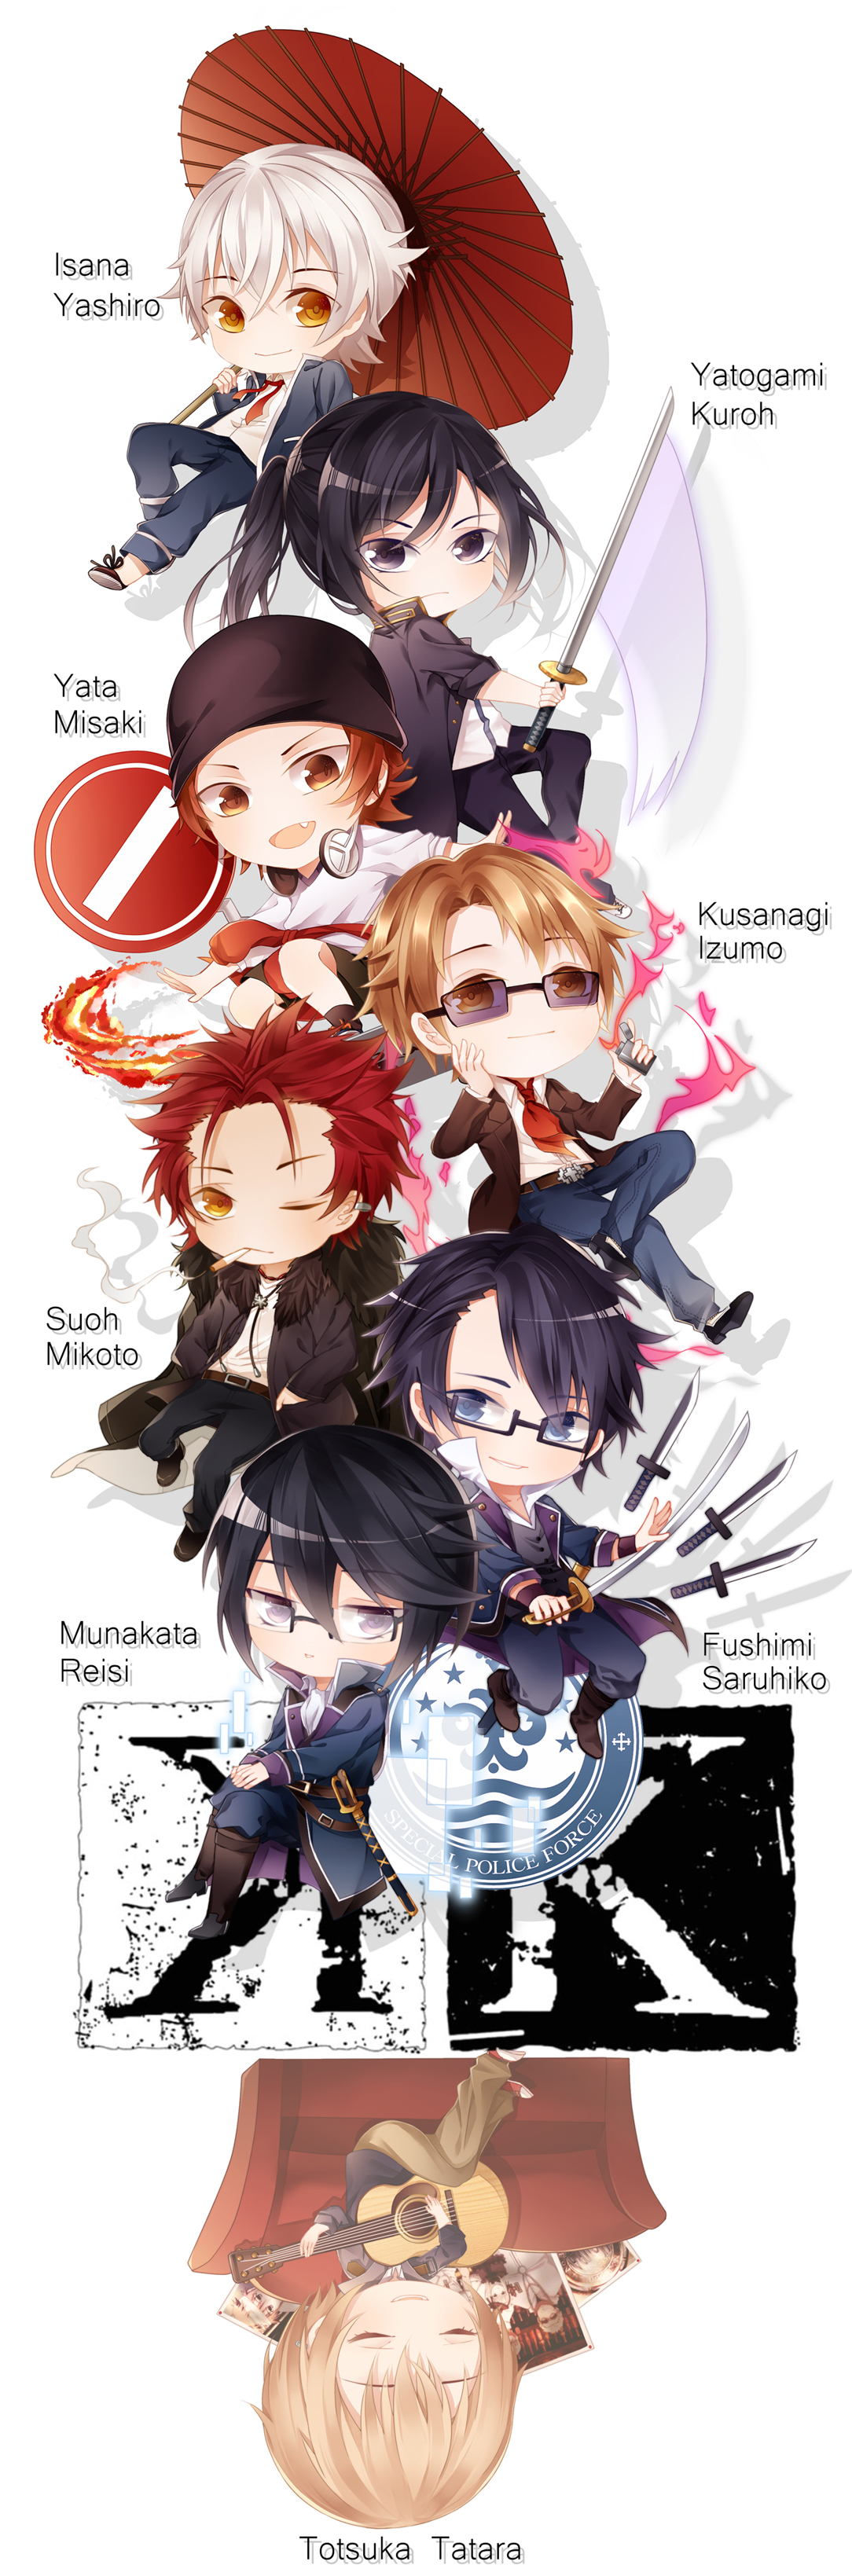 K(アニメ) K project anime, K project, Anime